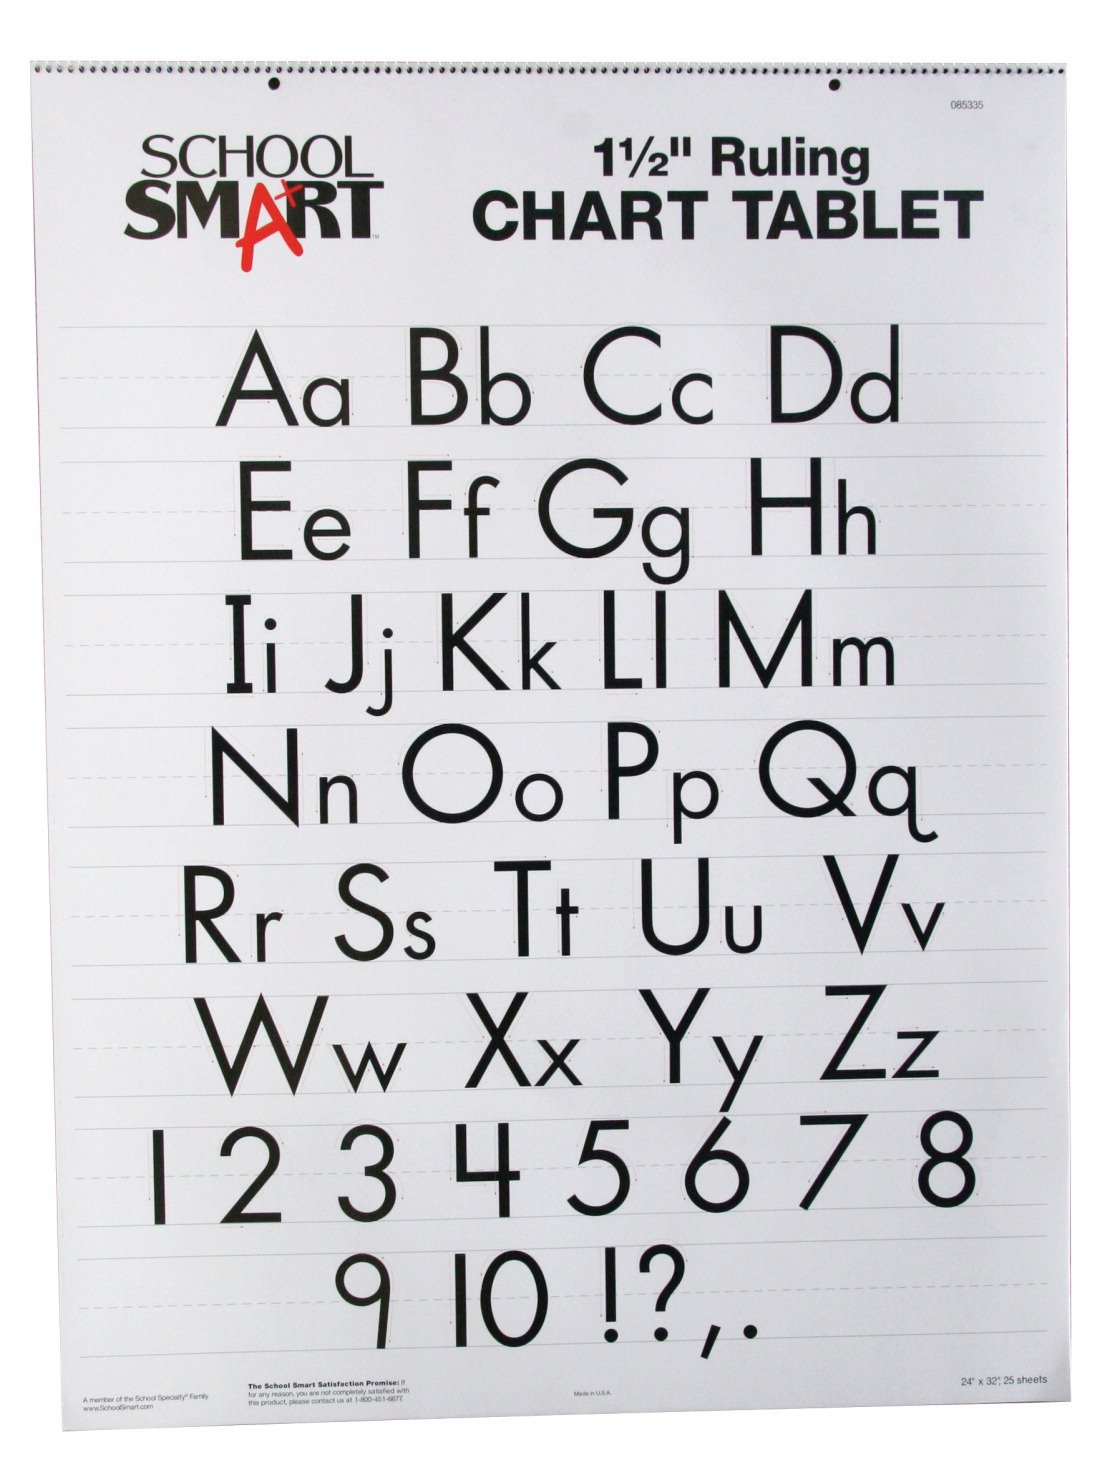 School Smart 85335 Skip-A-Line Chart Tablet - 1 1/2 inch Ruled - 24 x 32 inches - 25 Sheet Pad